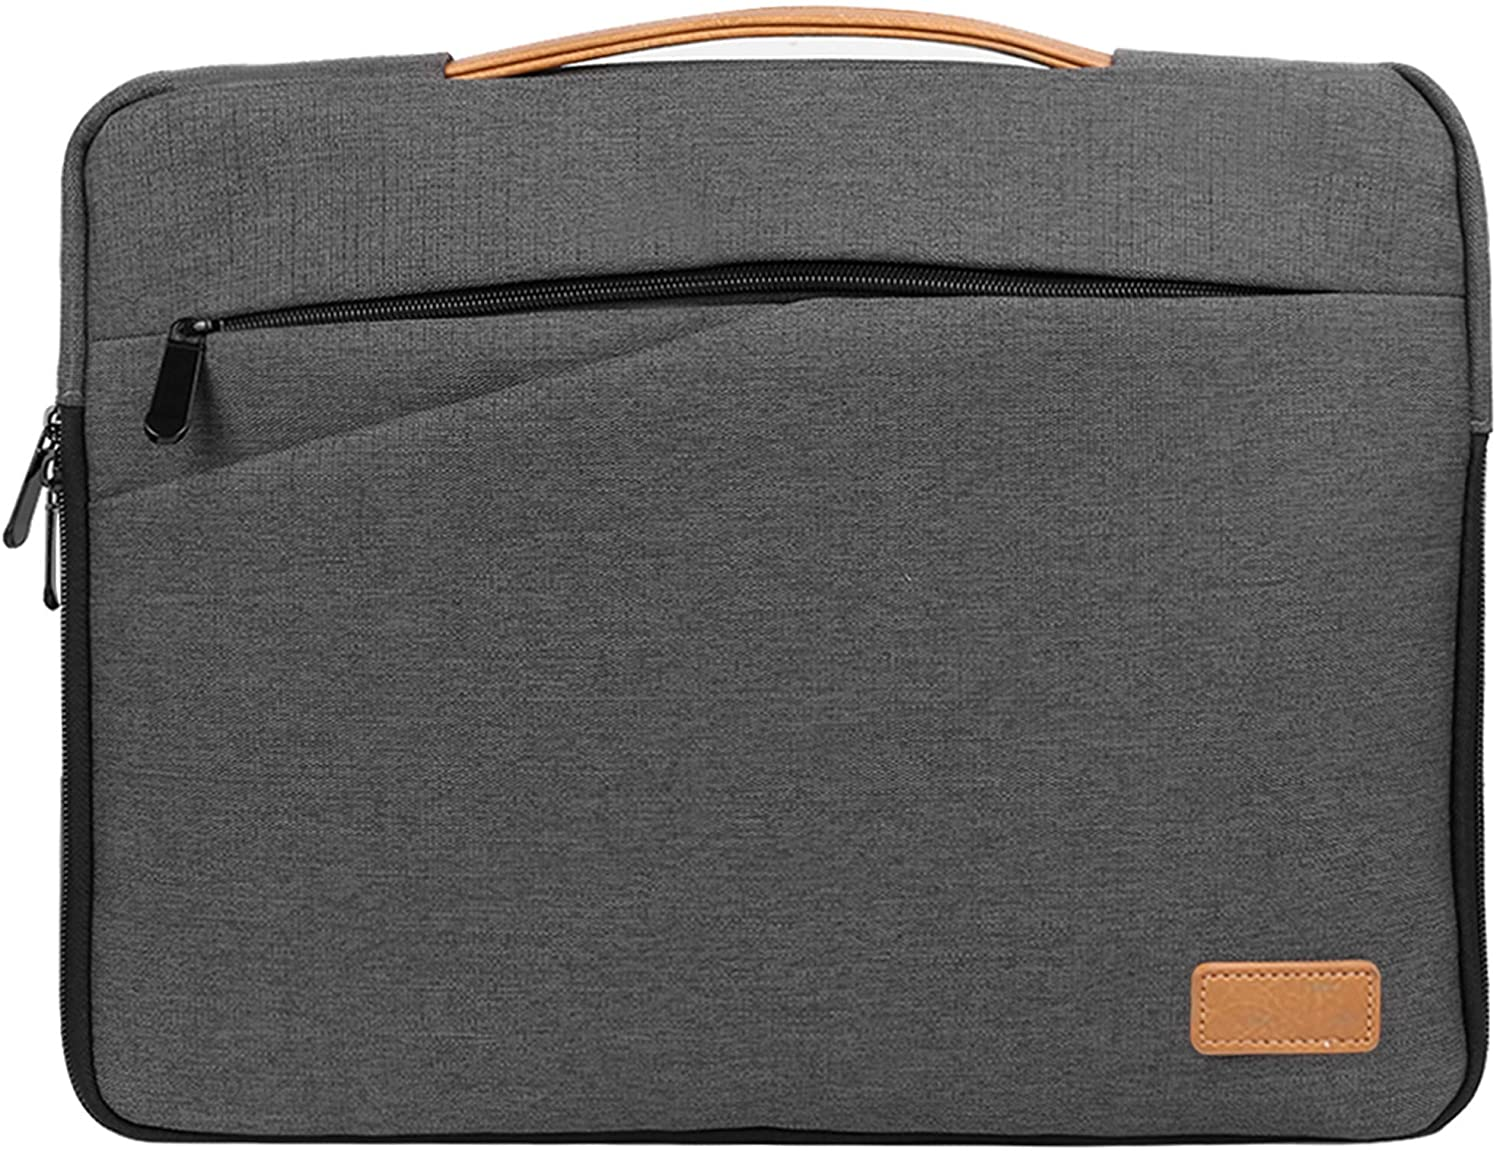 15.6inch Laptop Business Carrying Travel Bag Cover for ASUS Chromebook, ExpertBook, ProArt StudioBook One, ROG Zephryus, Chromebook Flip, ExpertBook, TUF Gaming, VivoBook